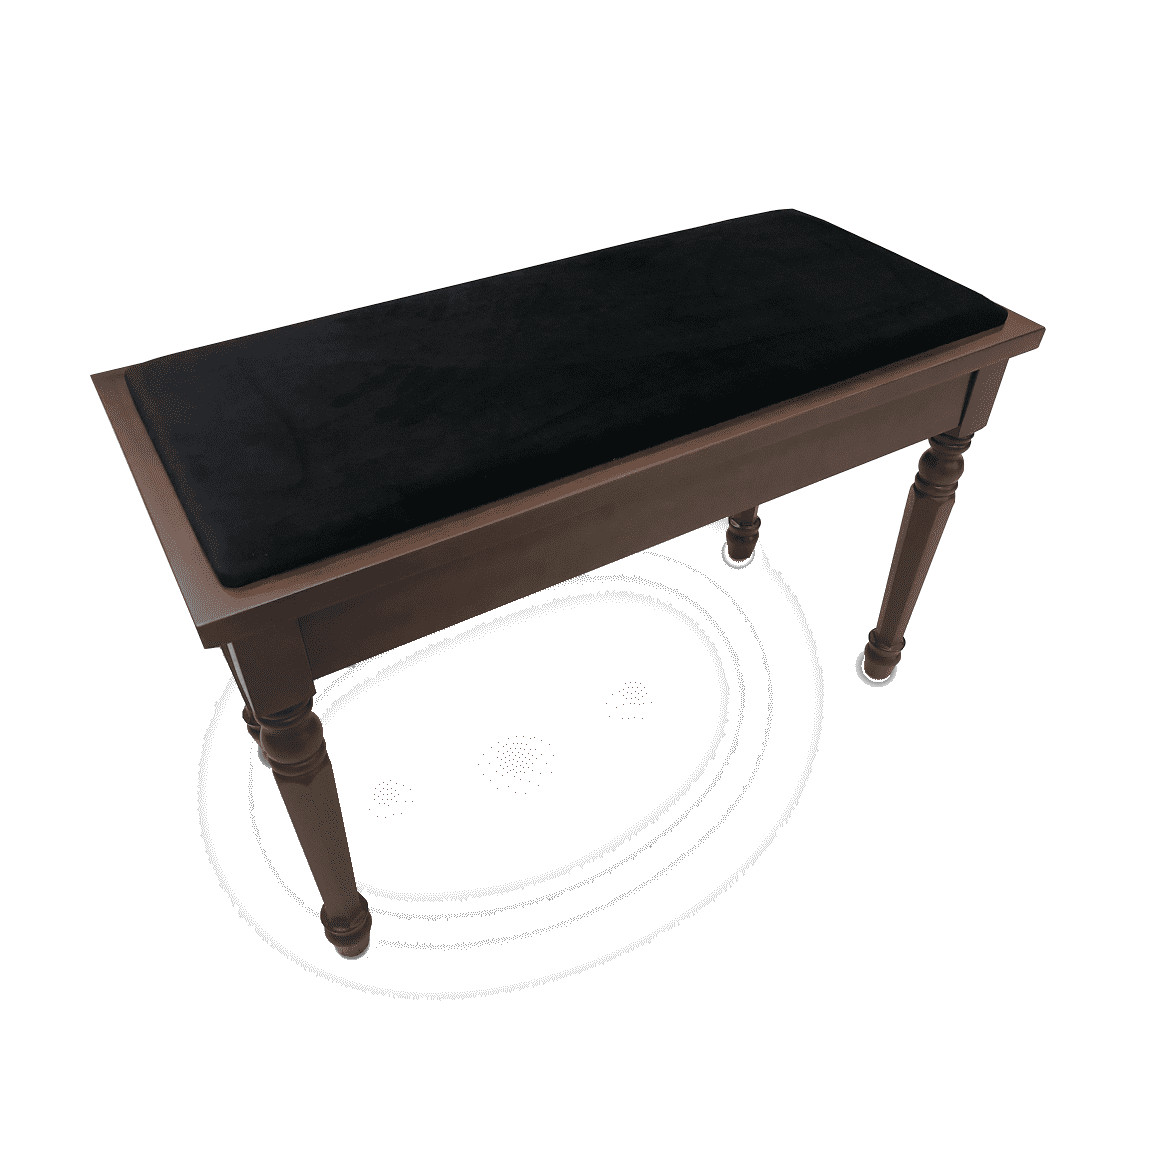 Frederick Walnut Piano Bench - Duet Padded Top w/ Spaded Legs